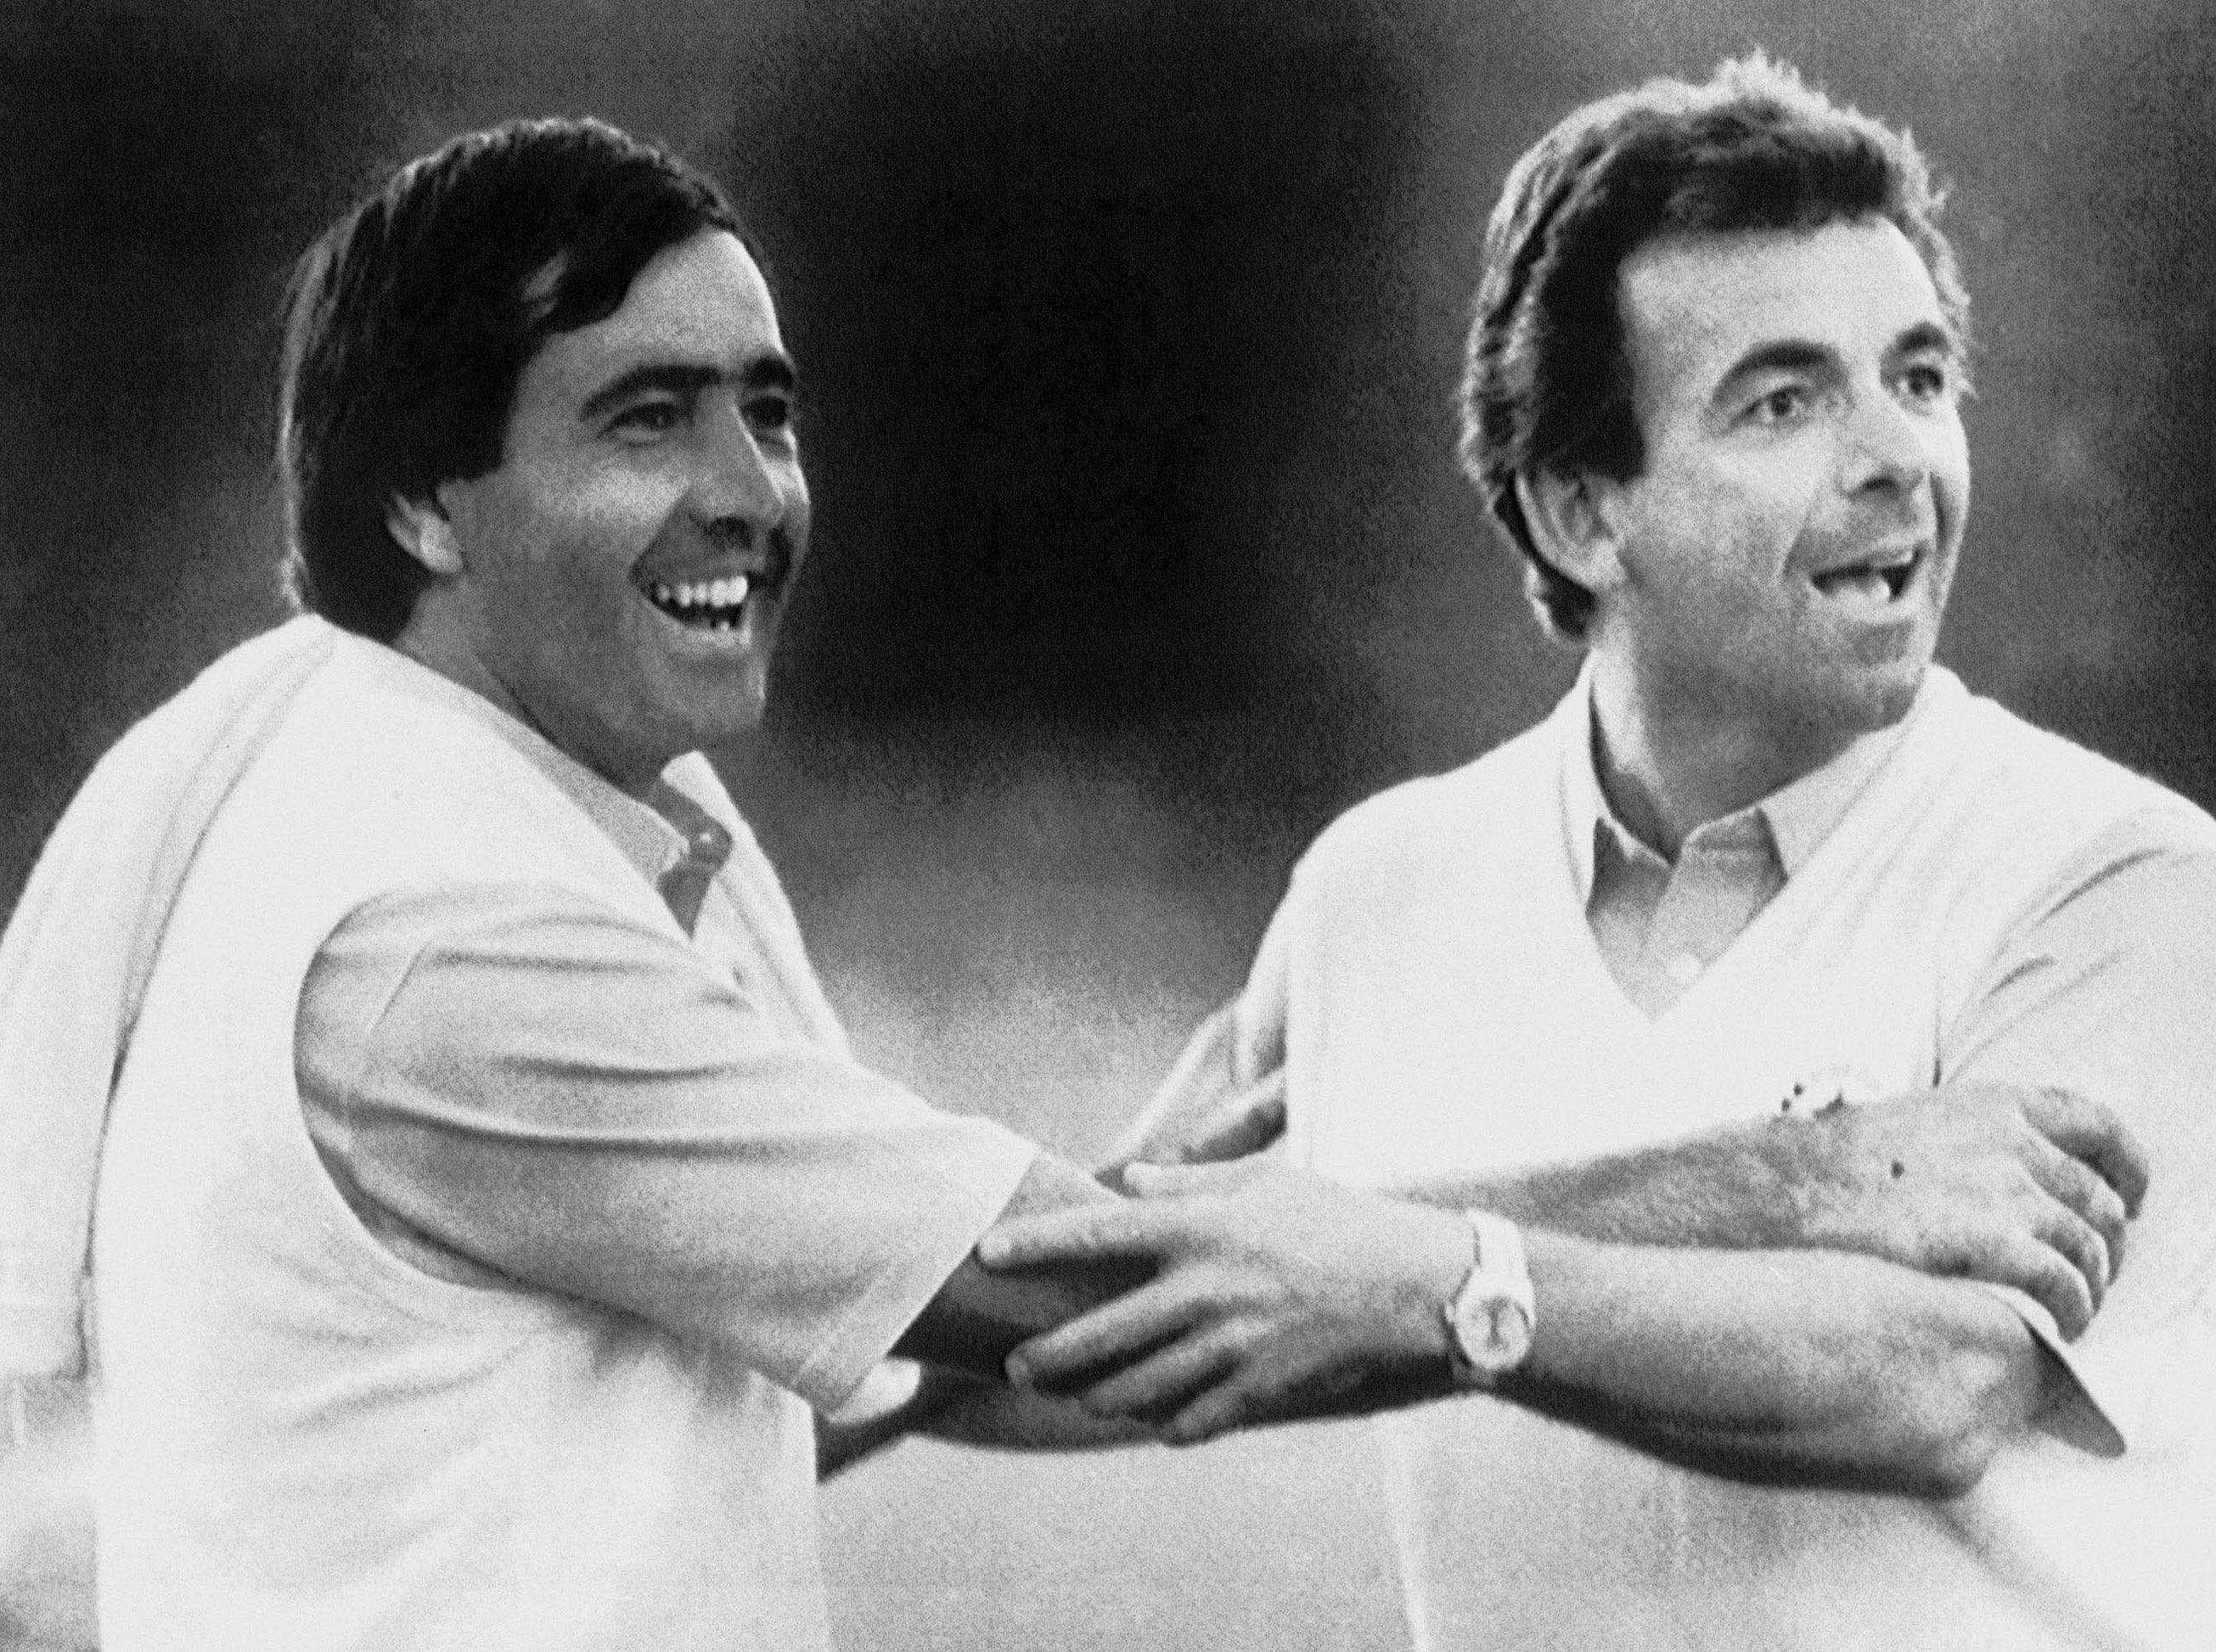 Team Europe, 1987: Seve Ballesteros and European captain Tony Jacklin celebrate after defeating the US for the first time in America, 15-13.